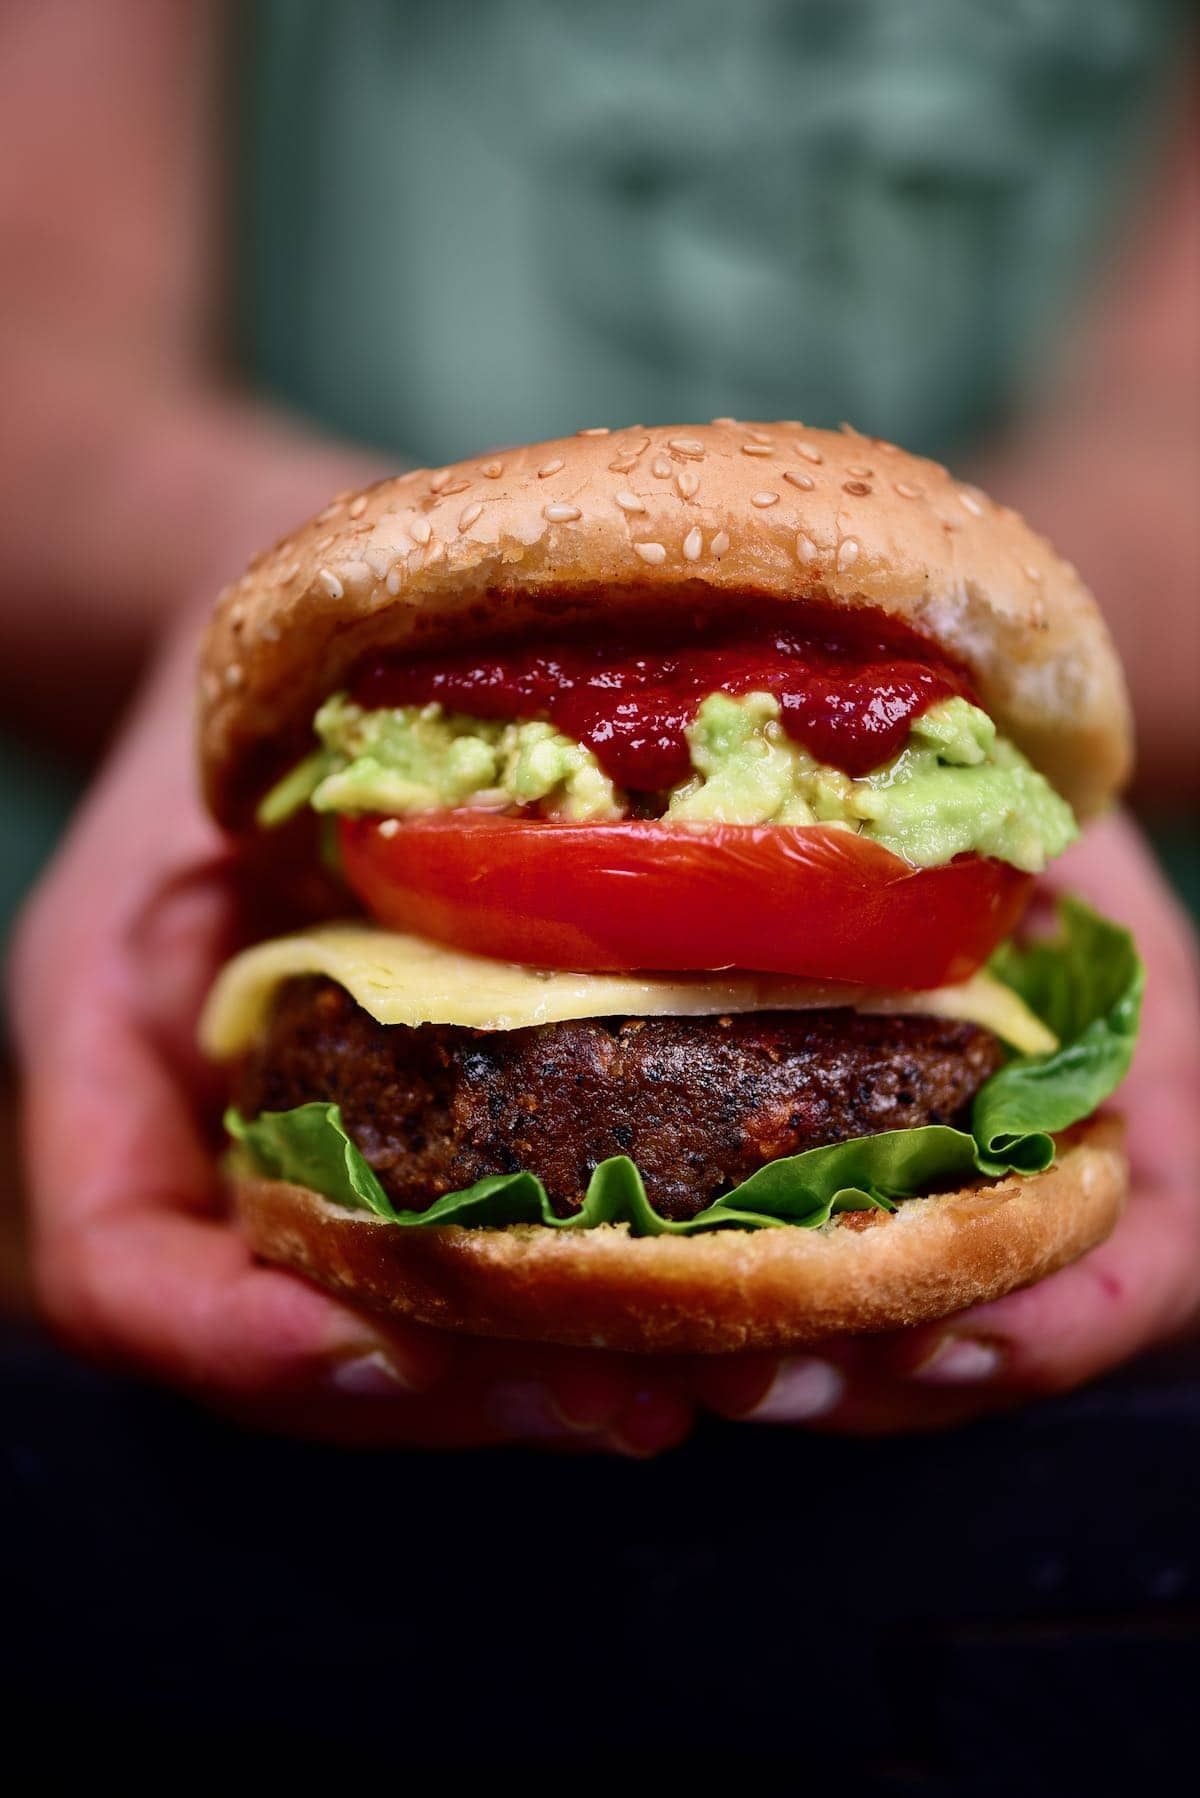 Assembled Black bean patty burger